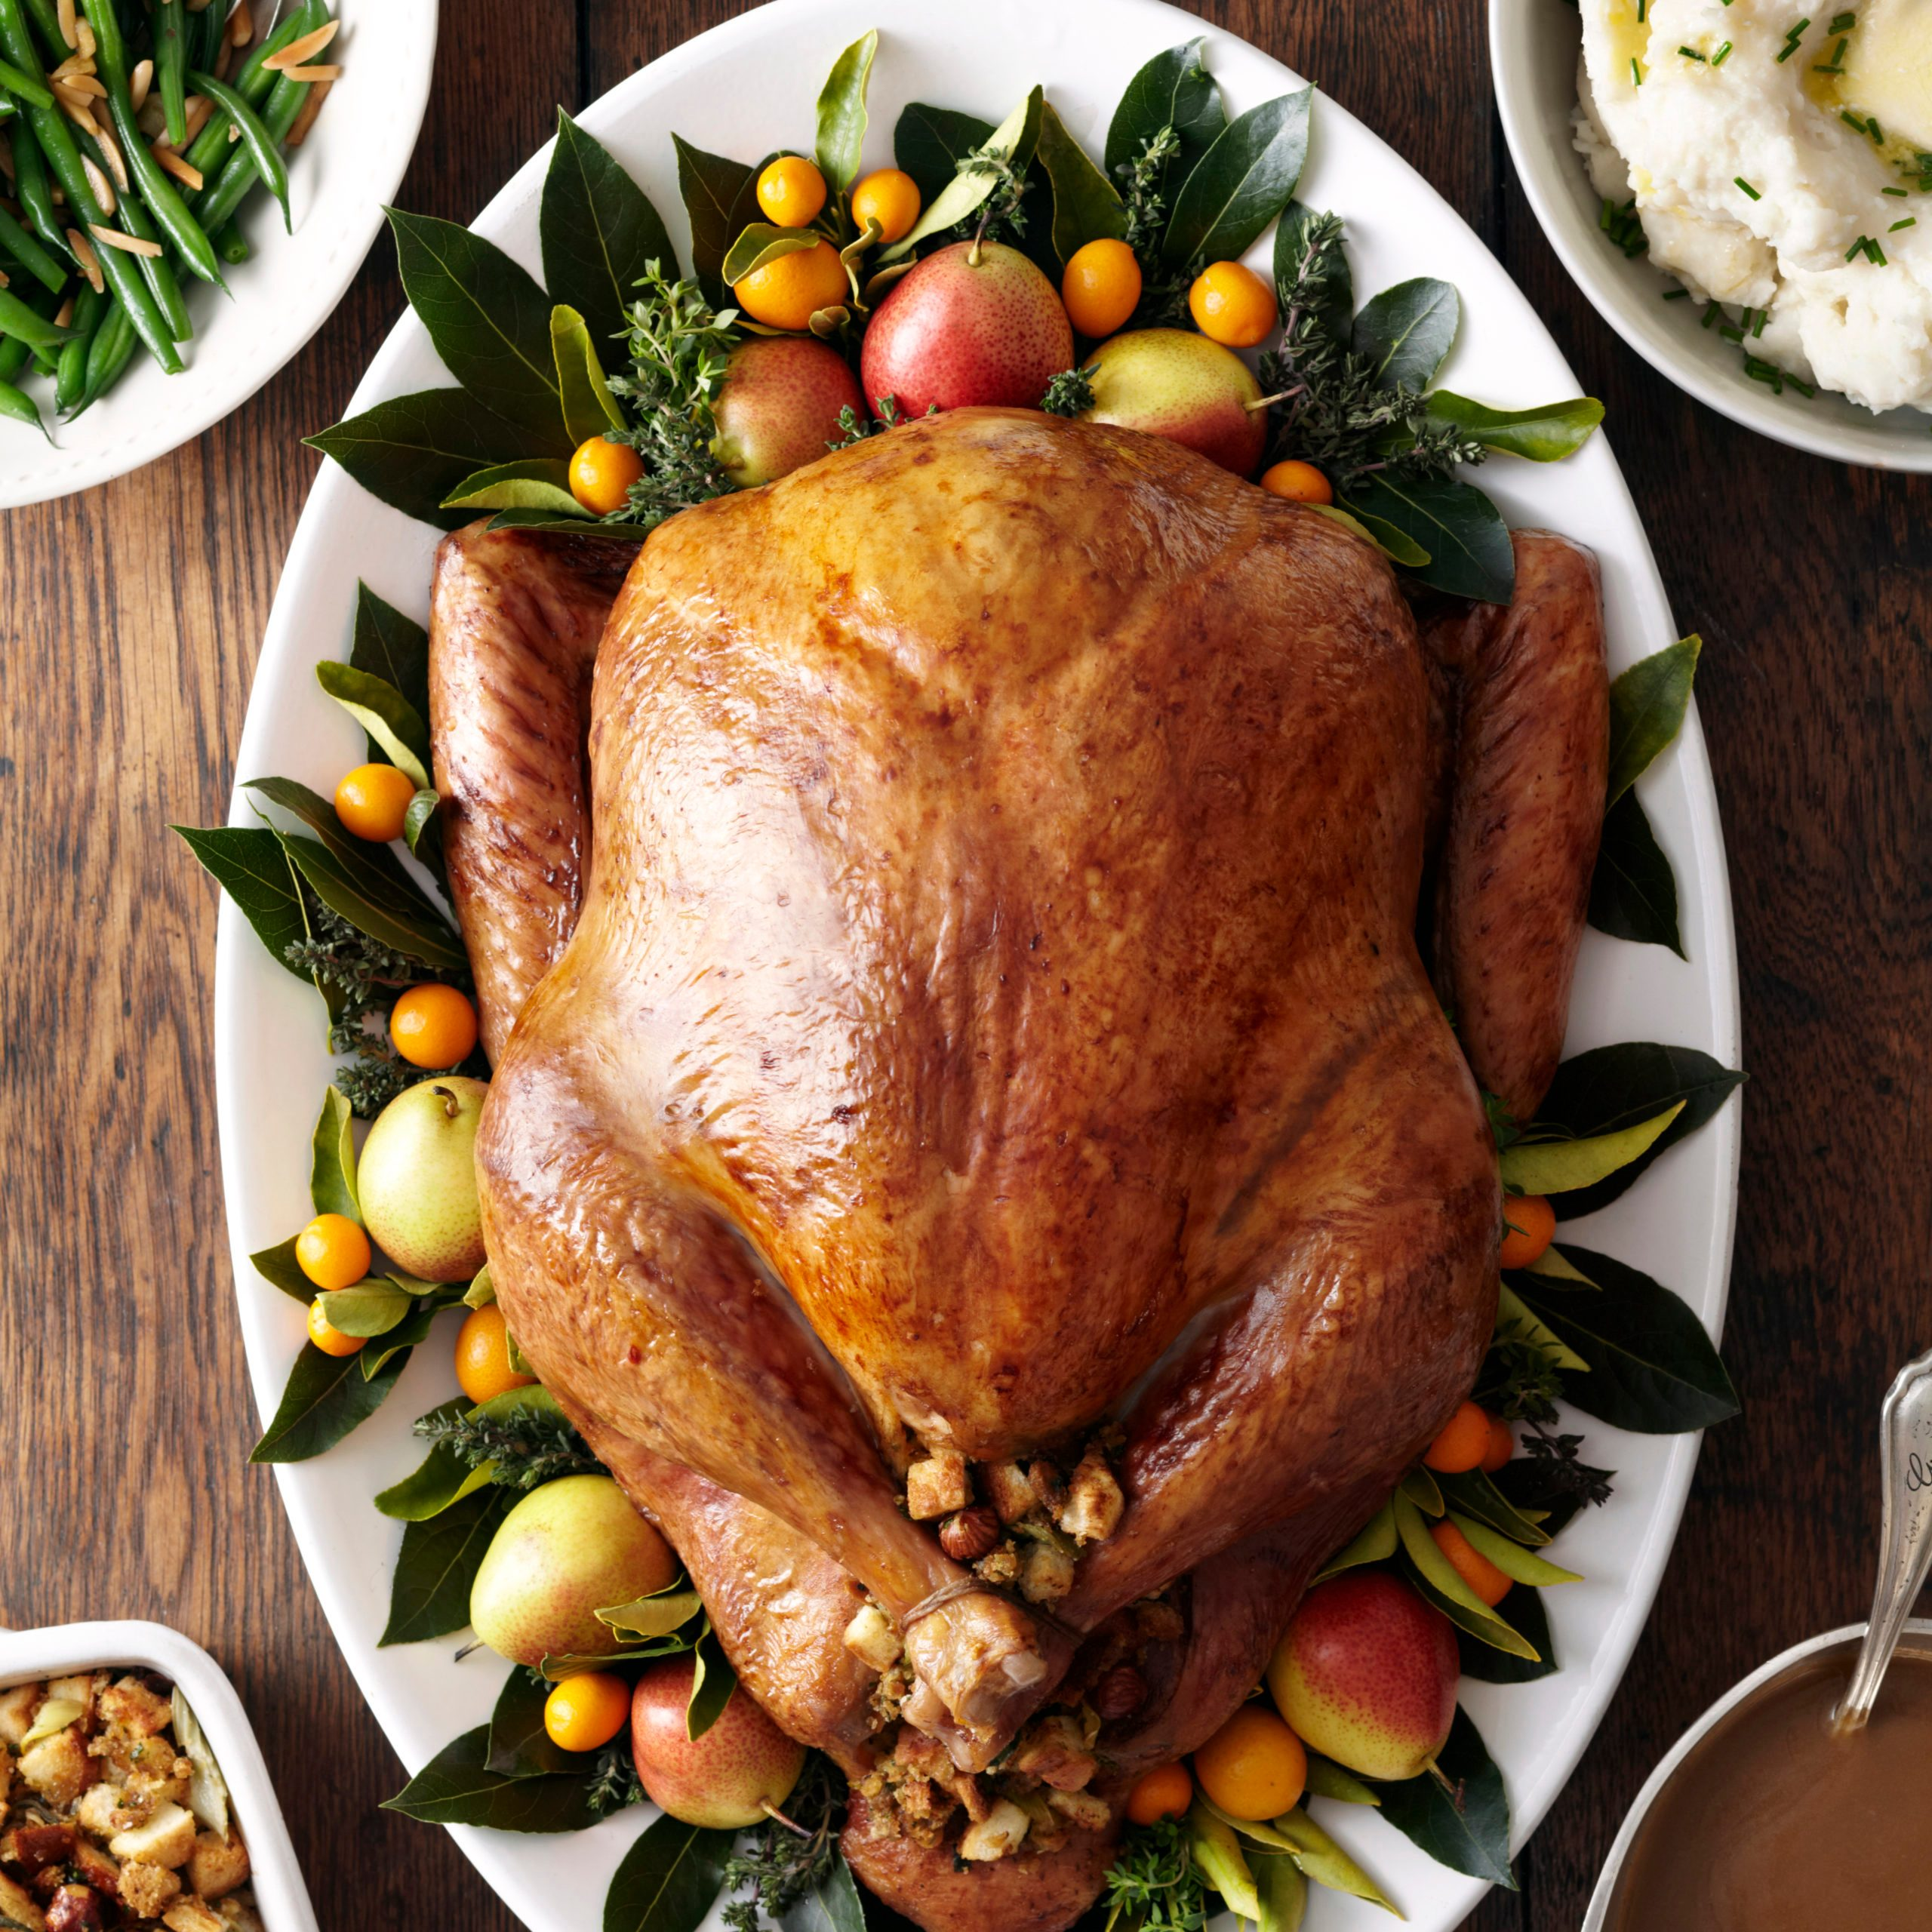 Turkey, stuffing, and gravy dishes on wood surface